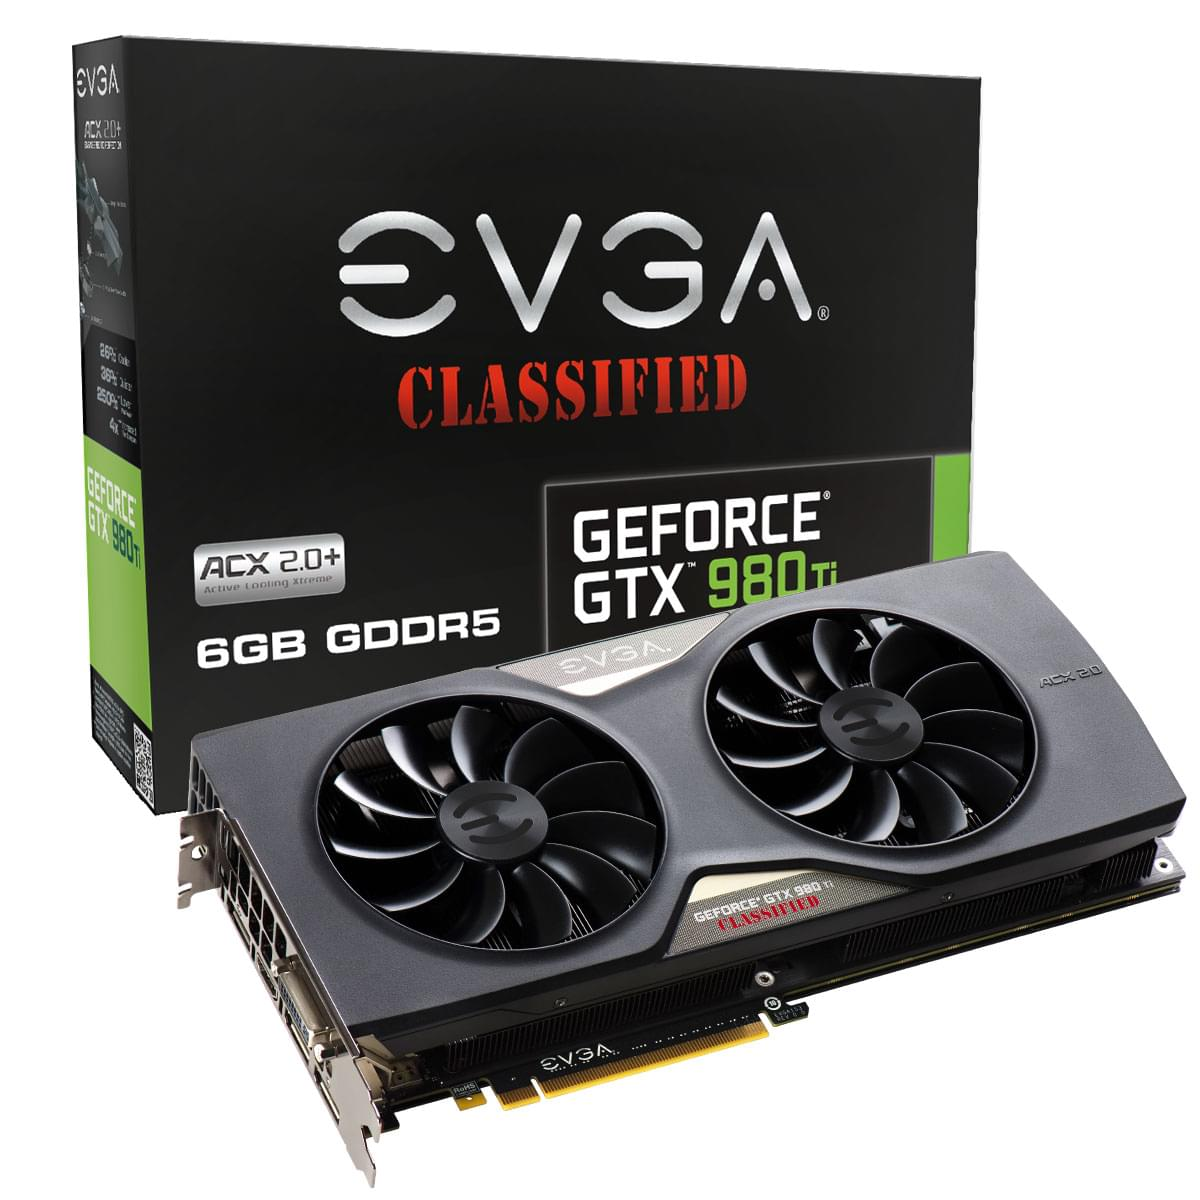 EVGA GTX 980Ti Classified GAMING -980TI/6Go/DVI/DP/HDMi - Carte graphique - 0